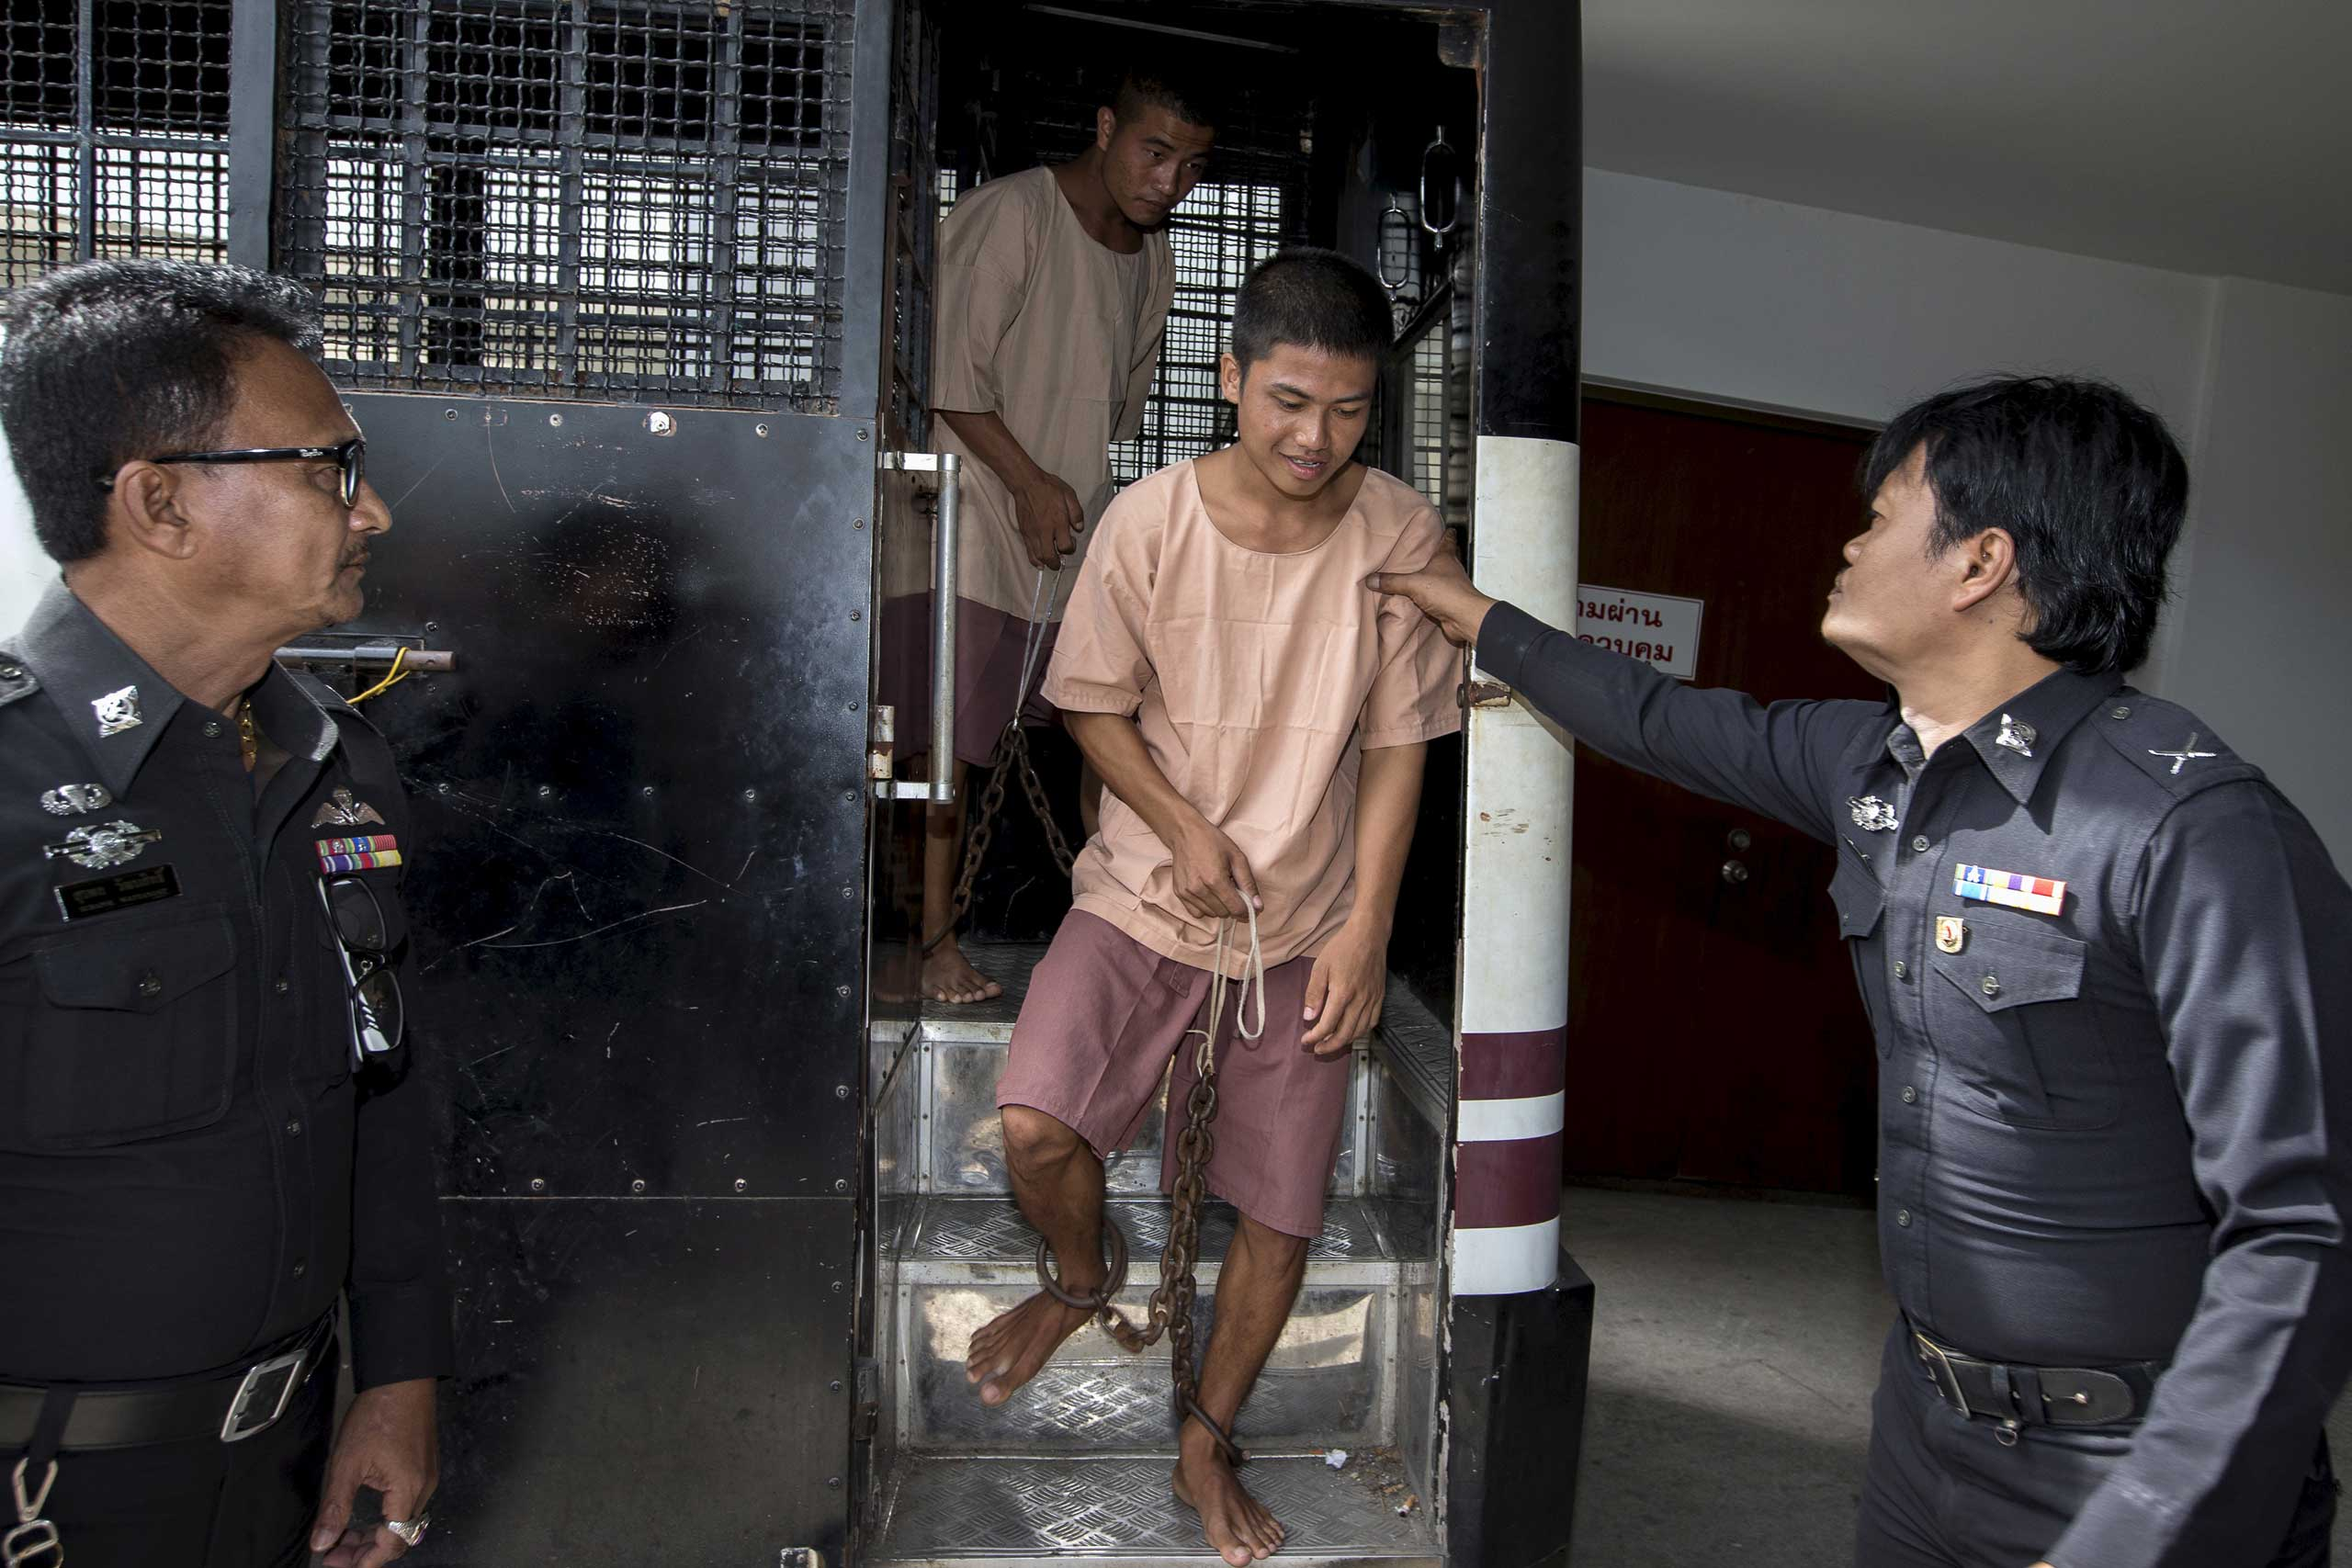 Burmese migrant workers Wai Phyo and Zaw Lin arrive at the Koh Samui Provincial Court, in Koh Samui, Thailand, on July 8, 2015